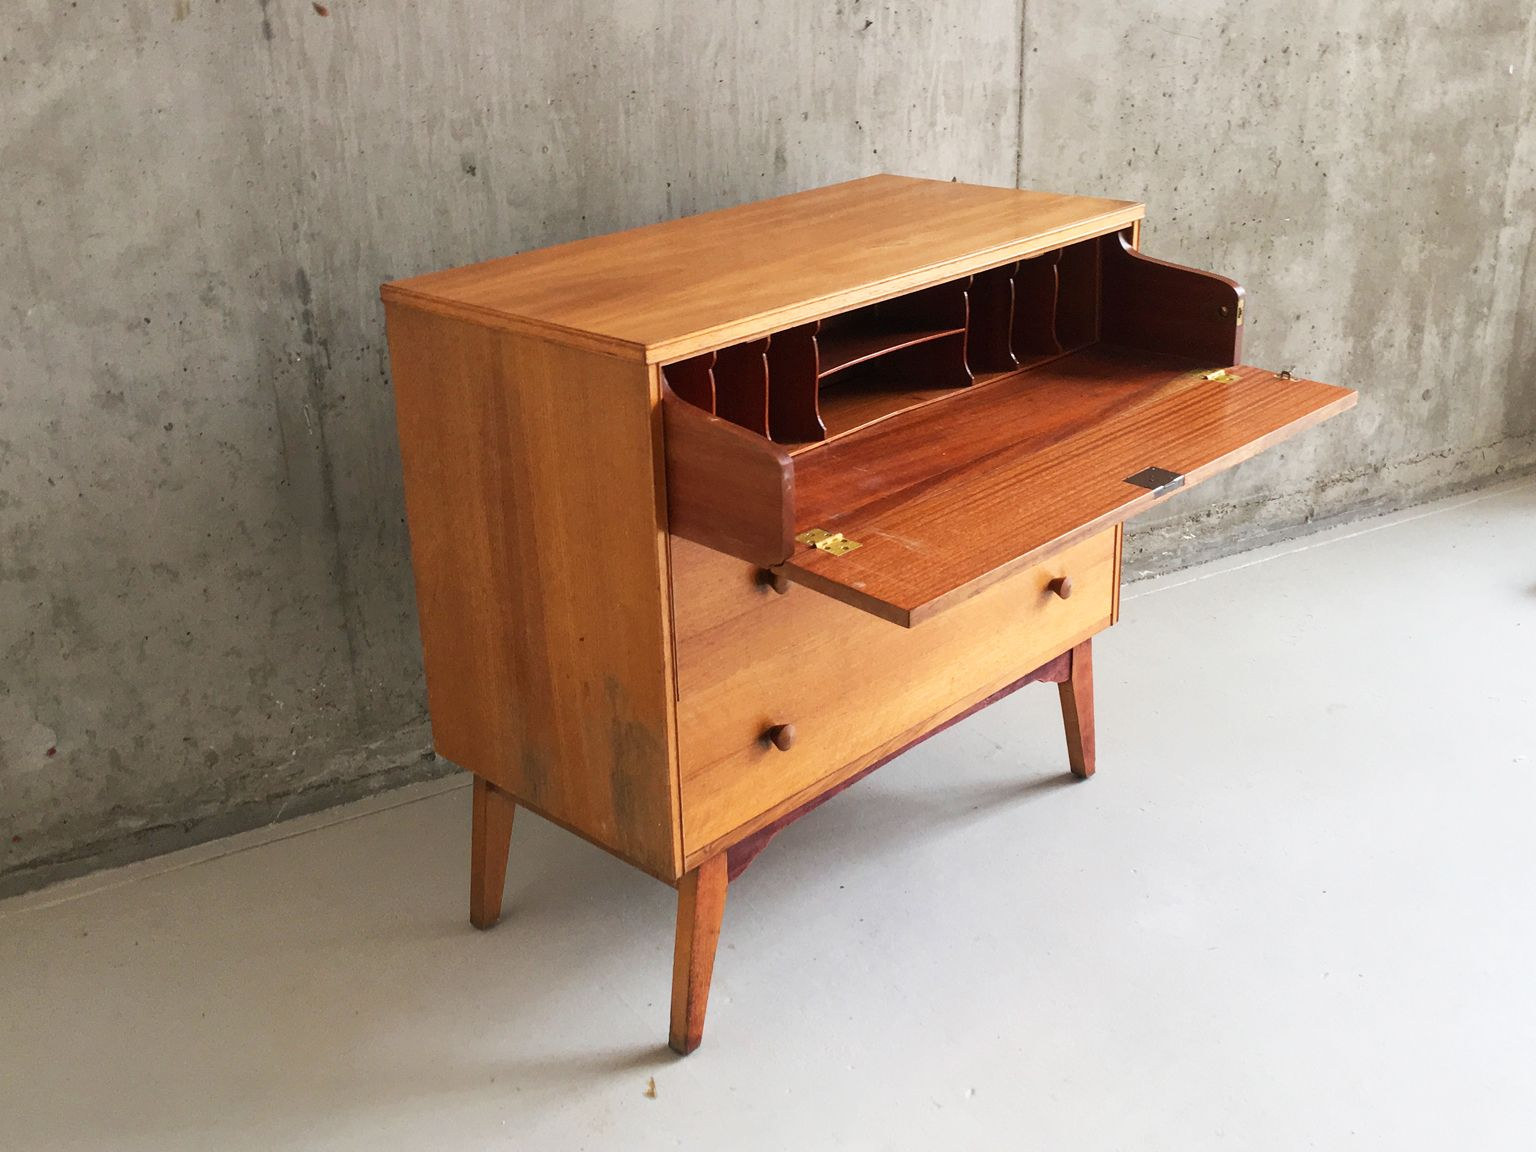 This is a teak chest of drawers with a writing desk which